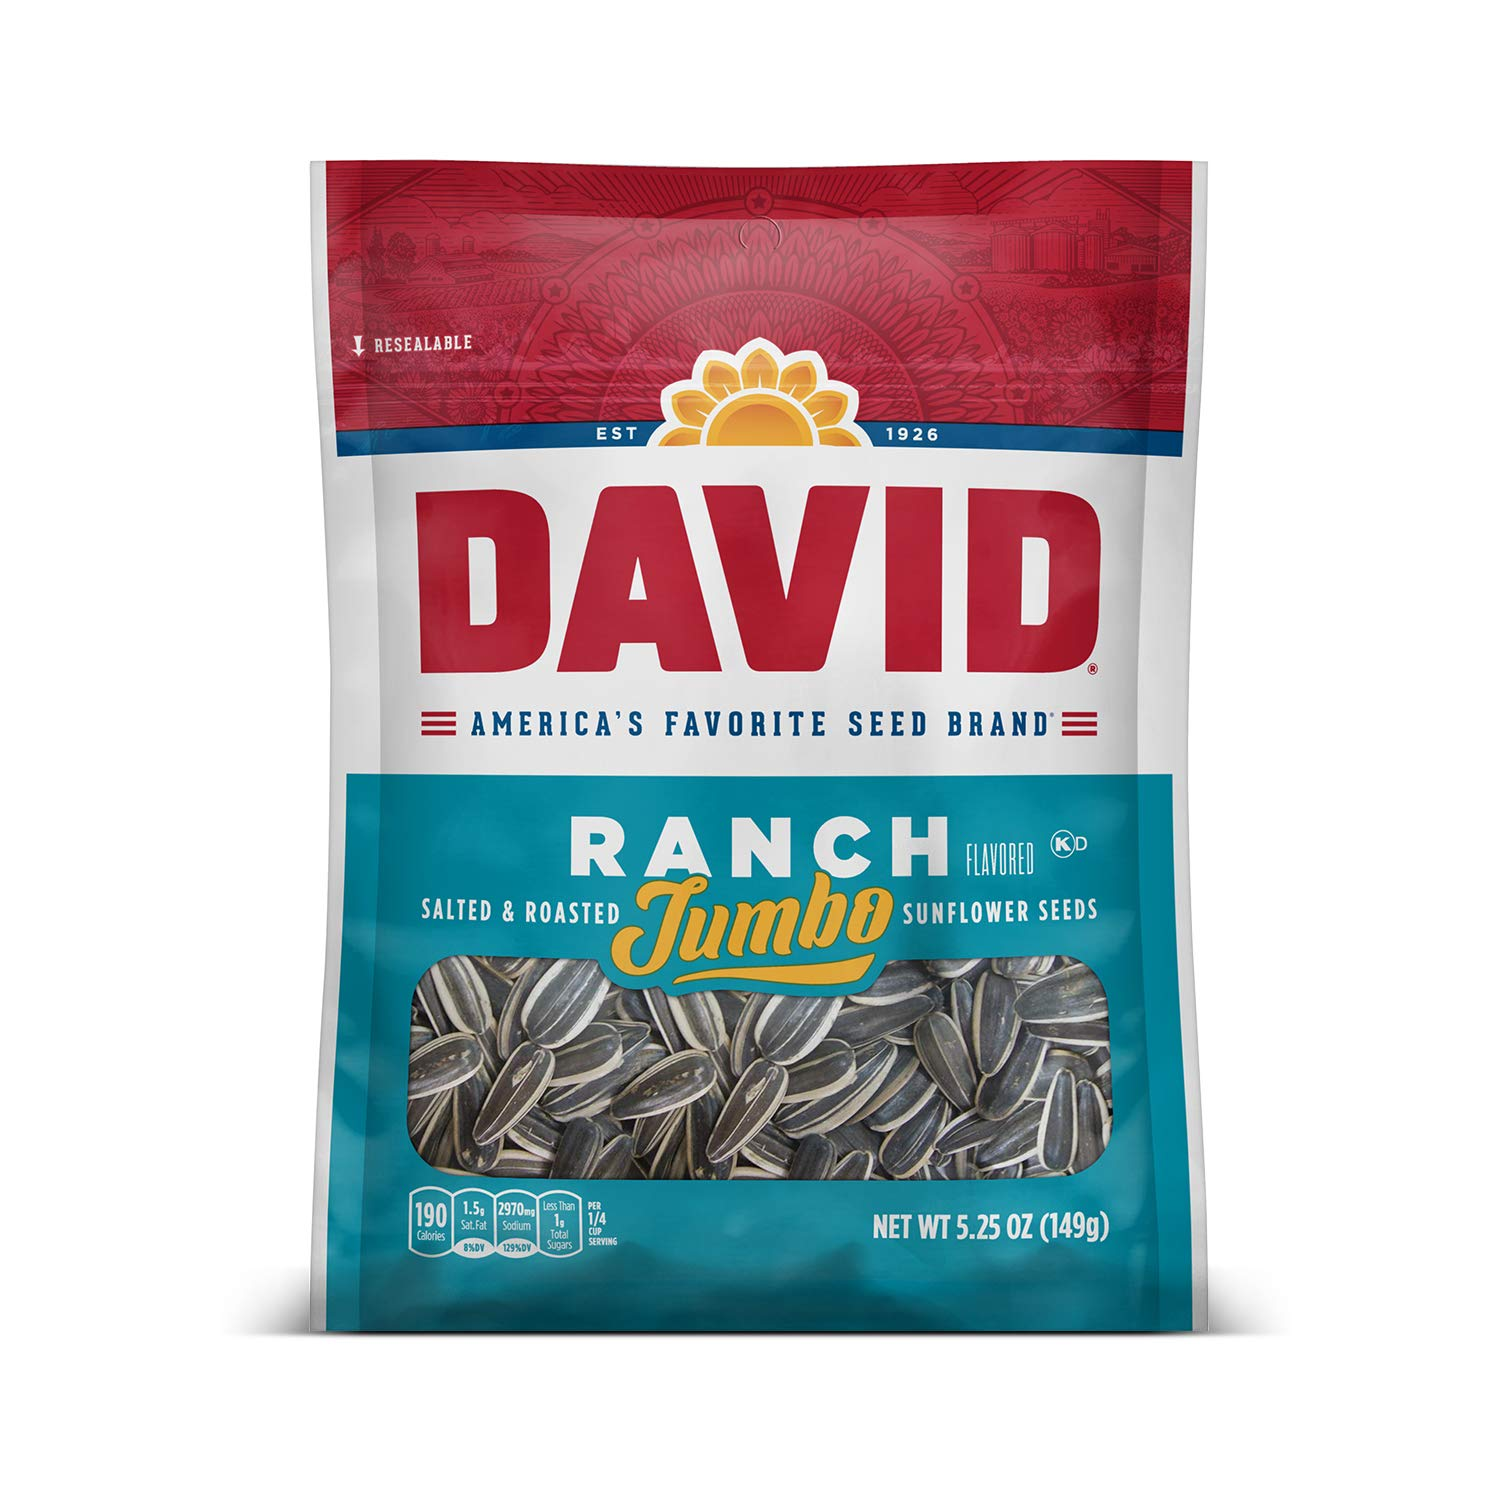 35% OFF DAVID SEEDS Roasted and Salted quality assurance Seeds Jumbo 5.25 Sunflower Ranch